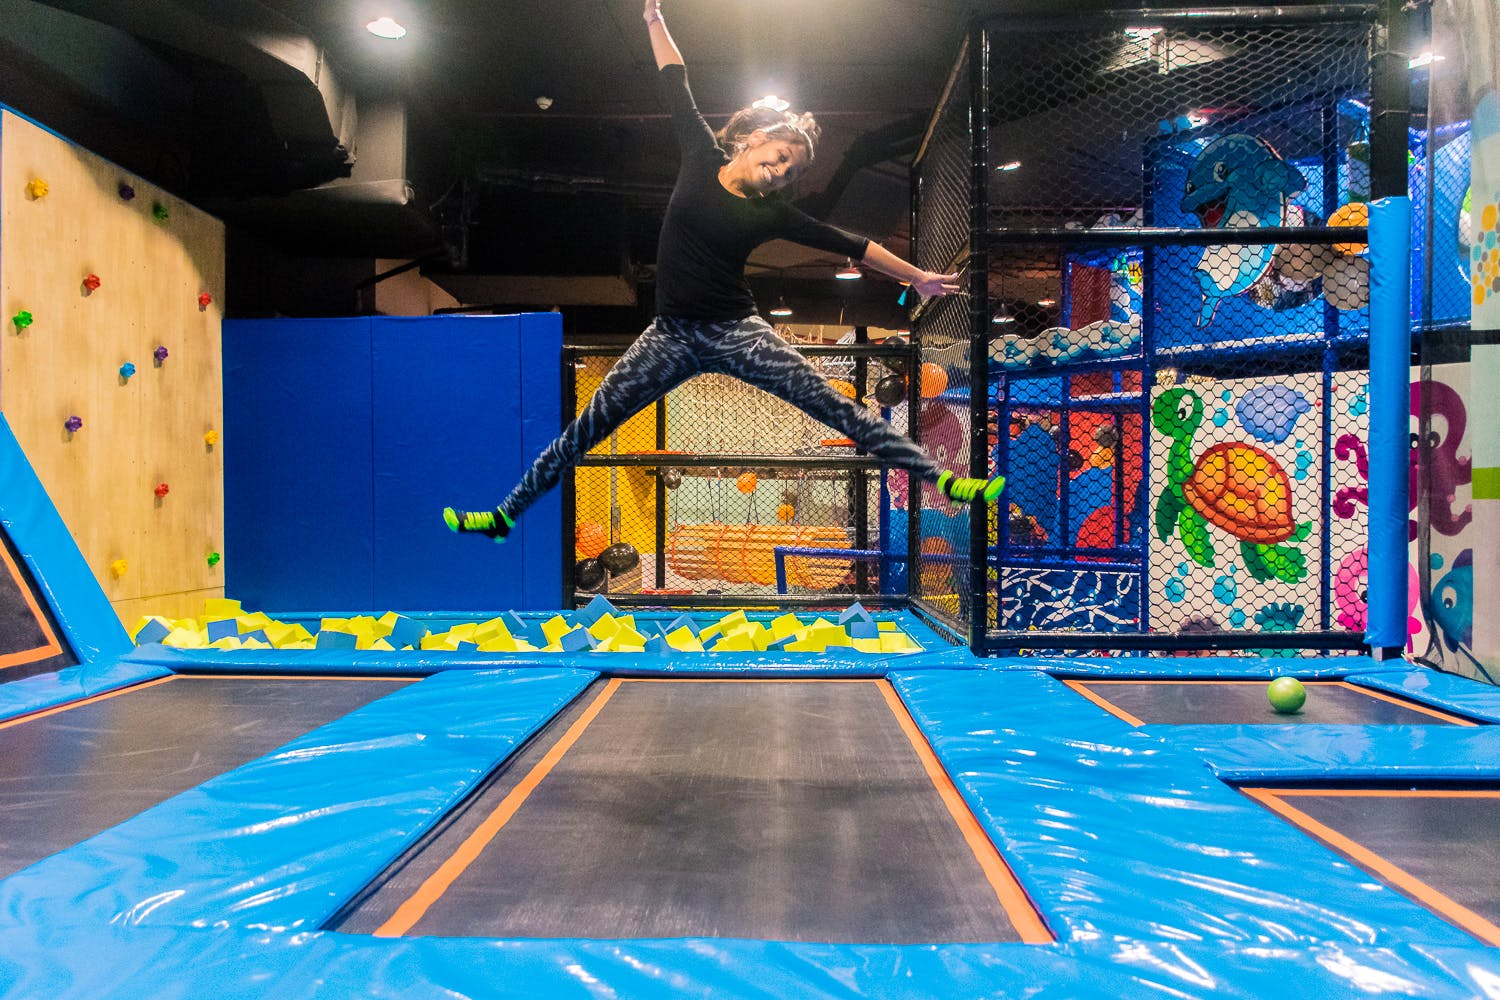 3 things to do in delhi - trampoline park